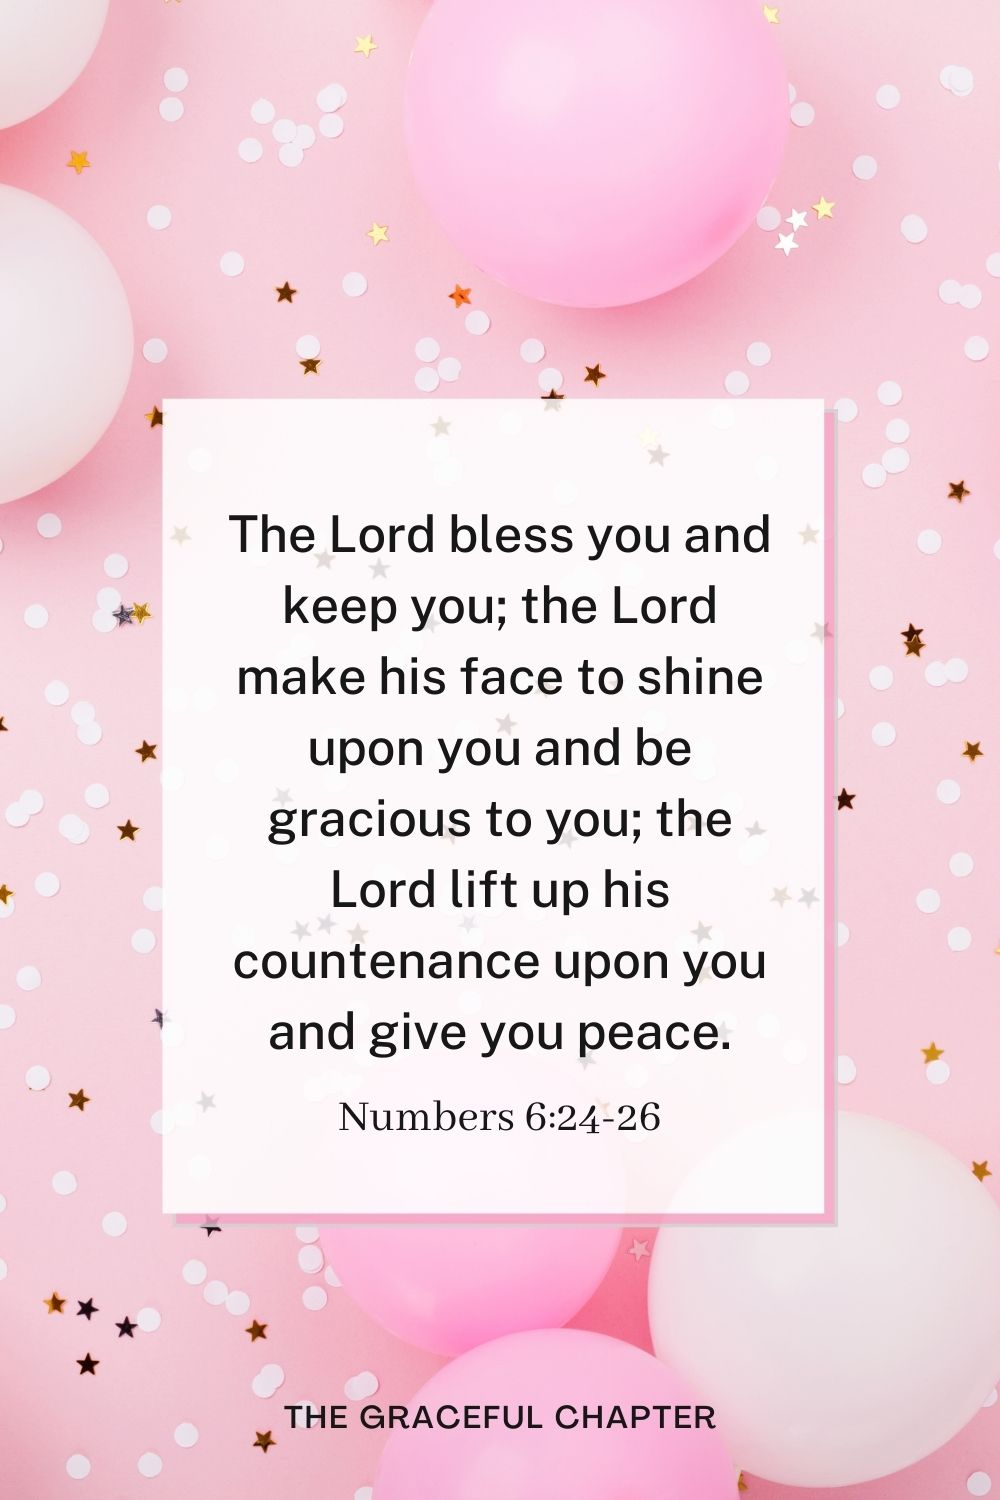 The Lord bless you and keep you;the Lord make his face to shine upon you and be gracious to you; the Lord lift up his countenance upon you and give you peace. Numbers 6:24-26